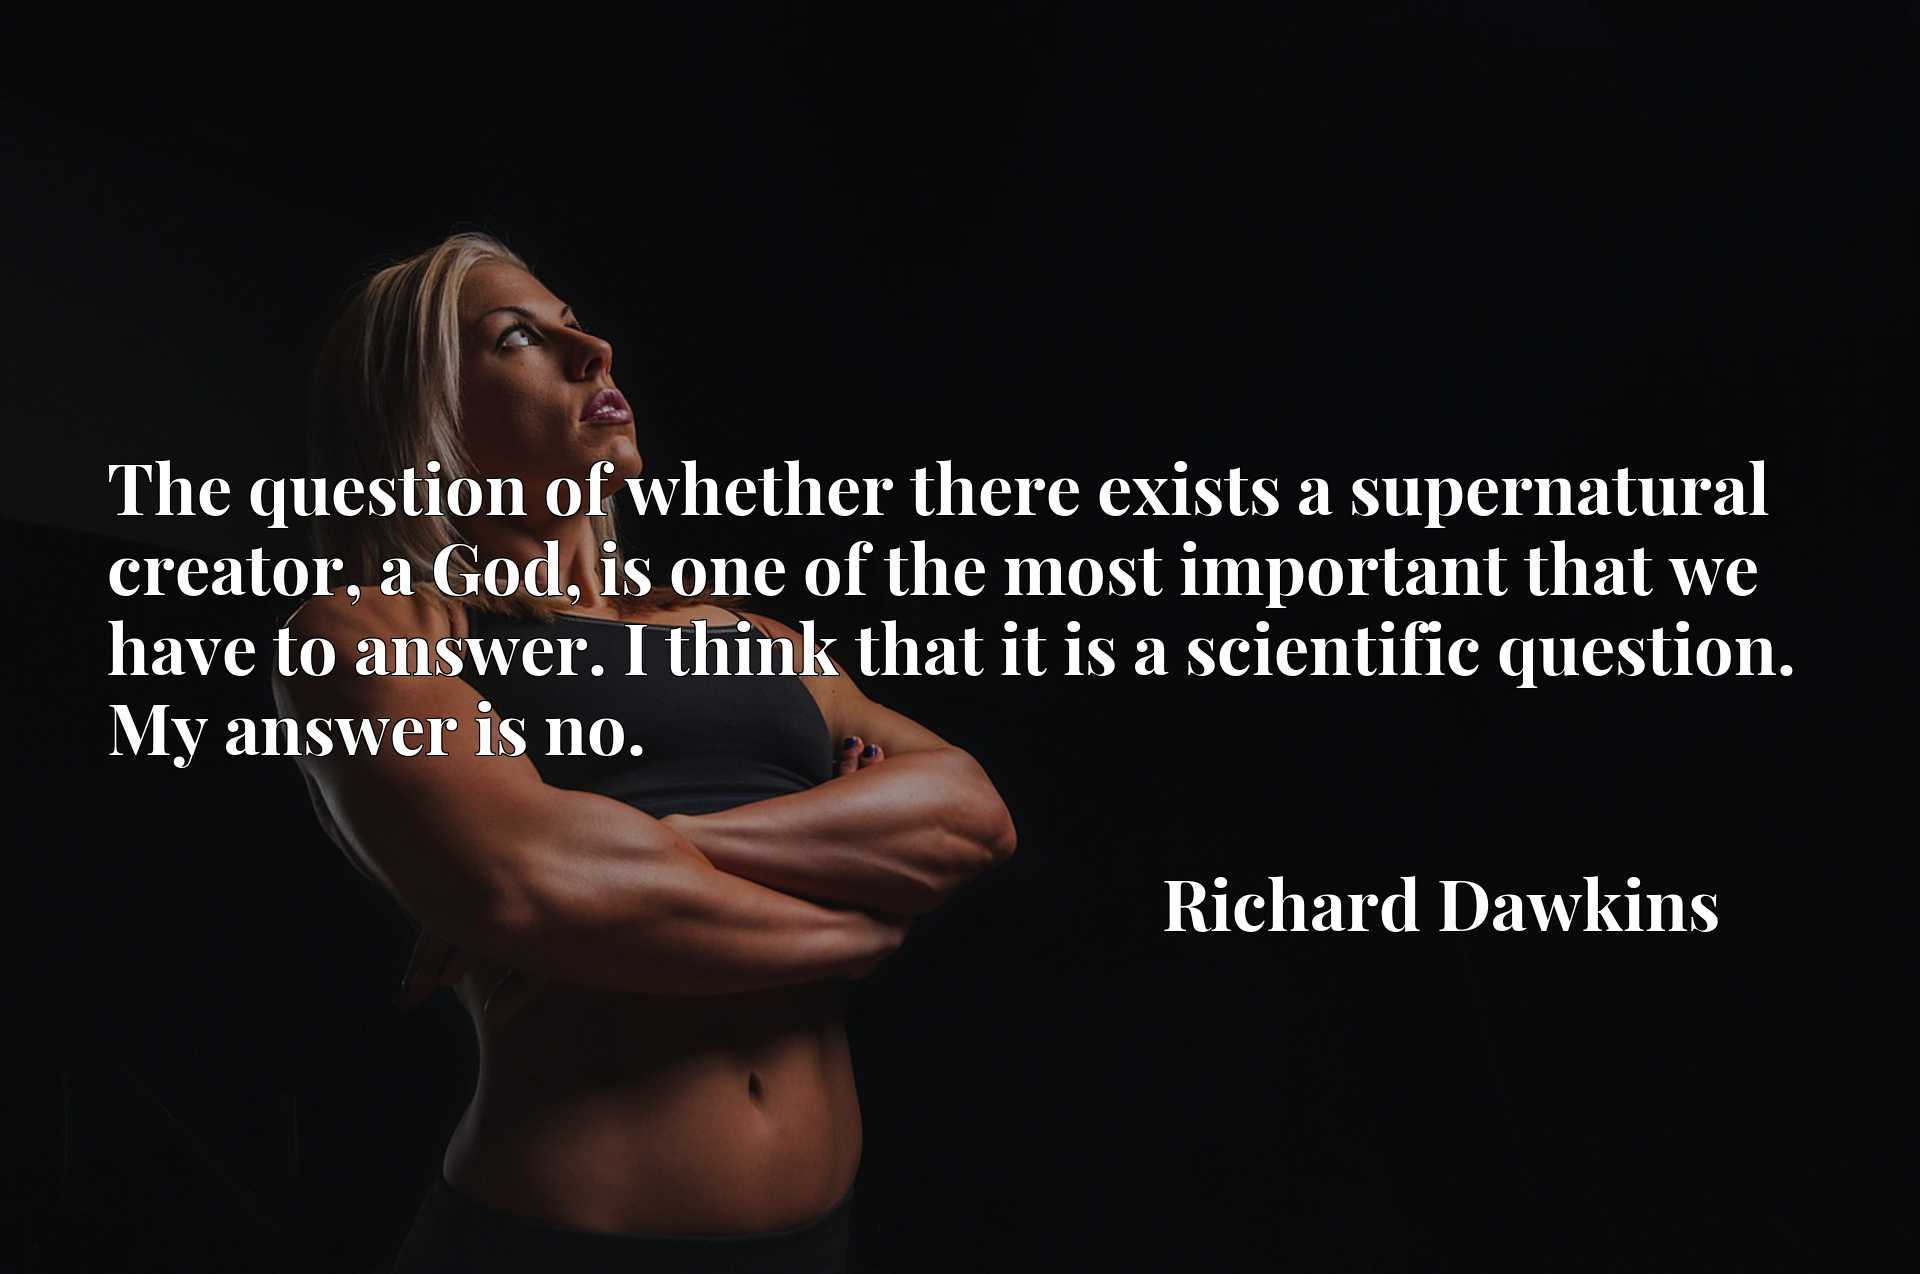 The question of whether there exists a supernatural creator, a God, is one of the most important that we have to answer. I think that it is a scientific question. My answer is no.